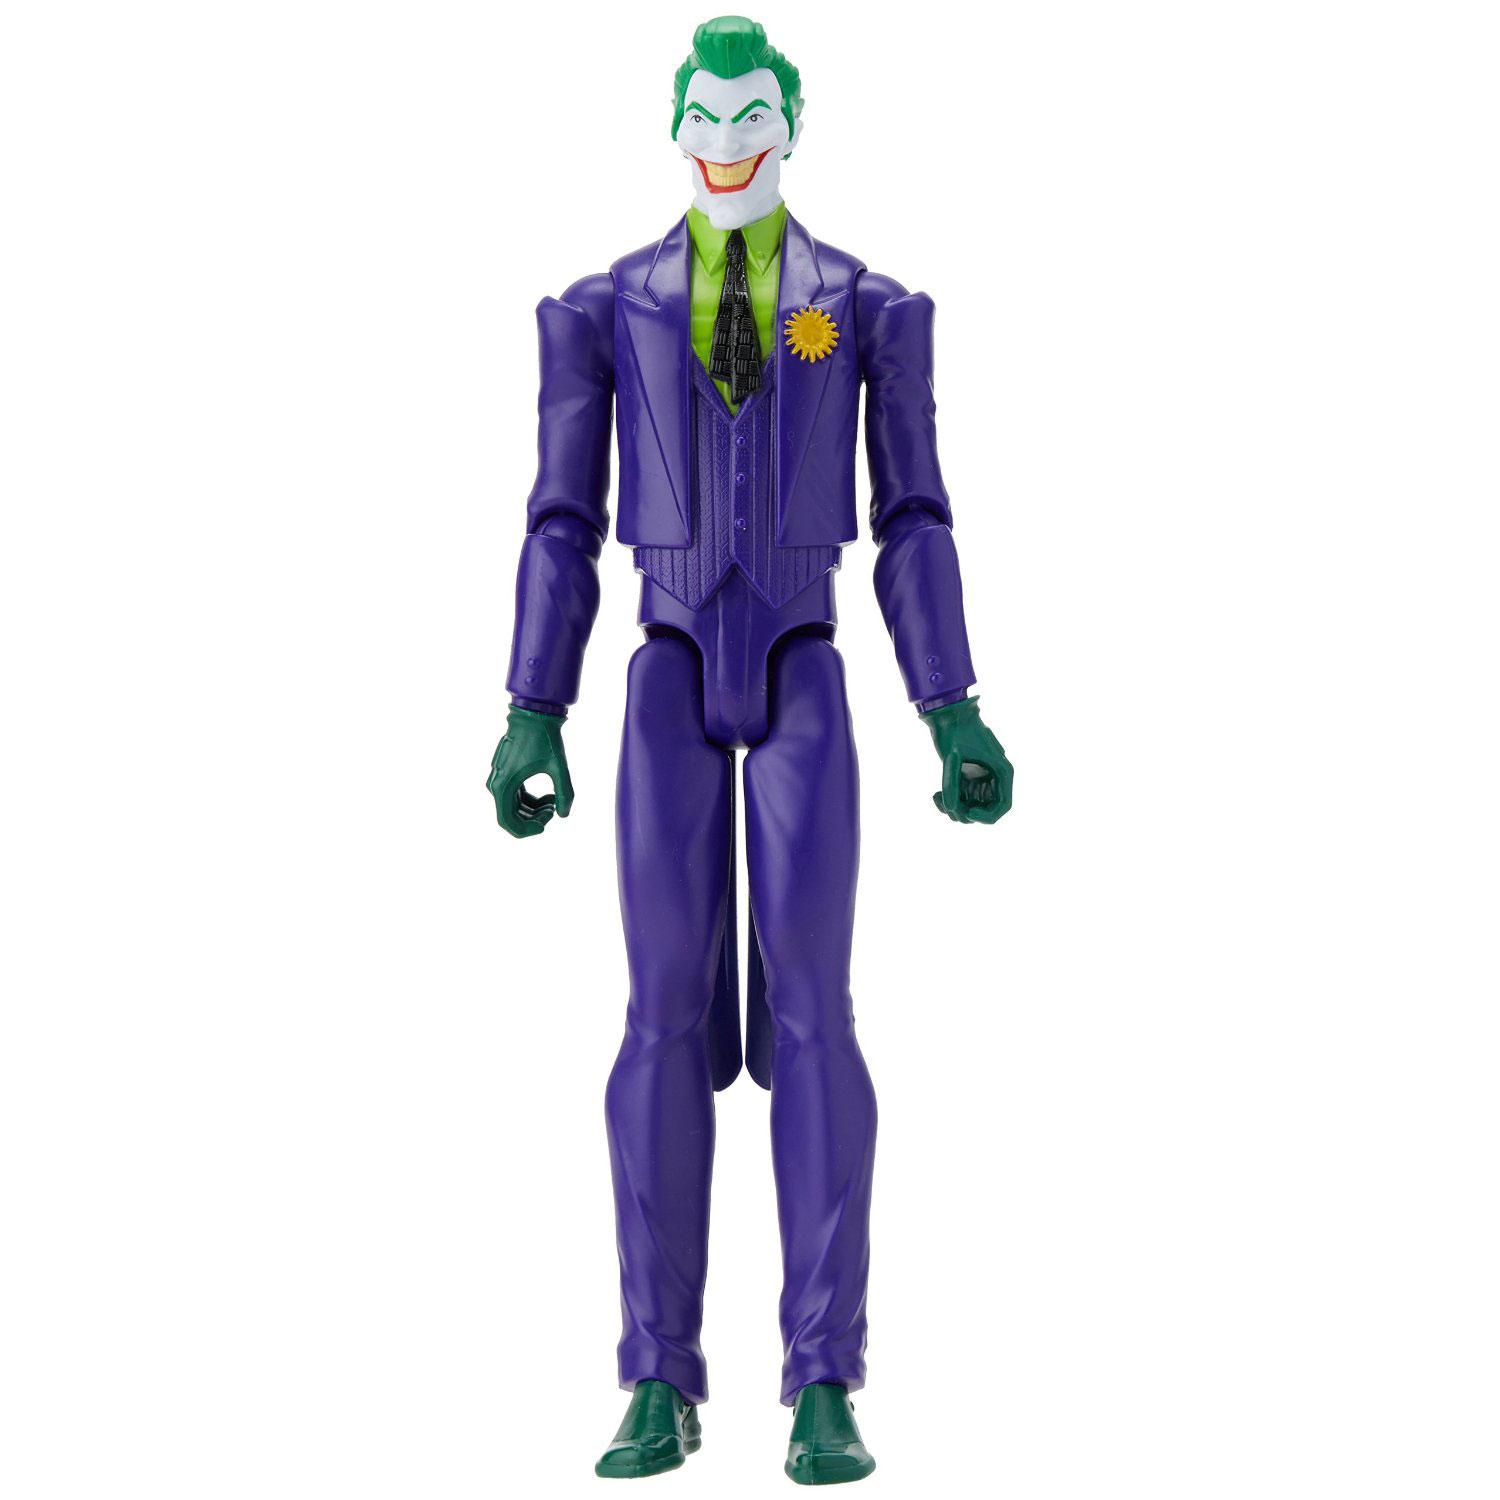 traxxas 1 8 scale with Dc  Ics Batman The Joker 12 Action Figure on modellbau Profi as well Funko Teen Titans Go Raven Pink Pop Vinyl Figure together with Watch together with C1355 moreover Lego 75160 Star Wars U Wing Microfighter.